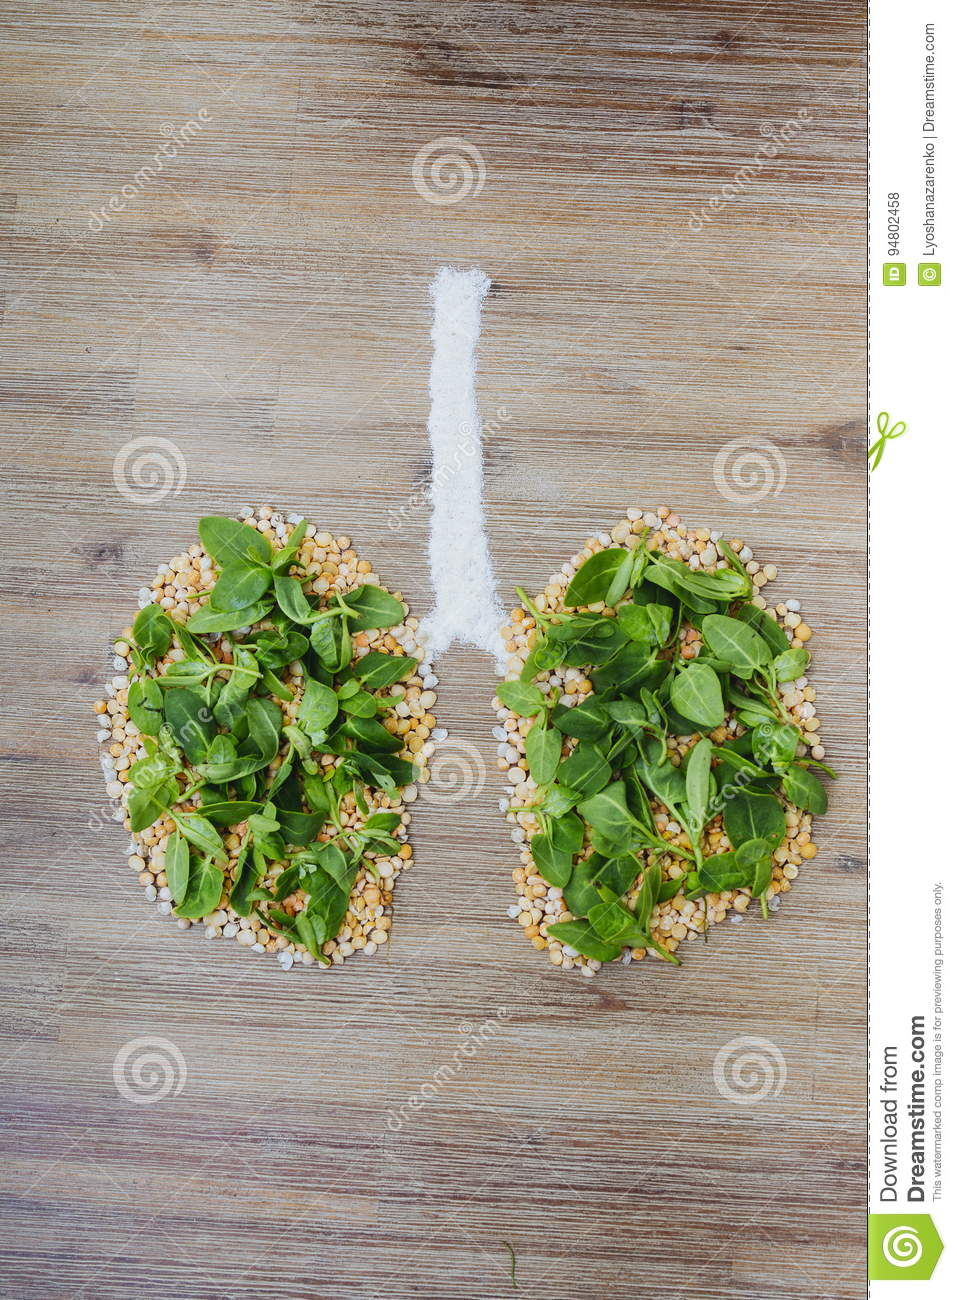 Breathing Clean Air, Saving The Planet Concept Stock Photo